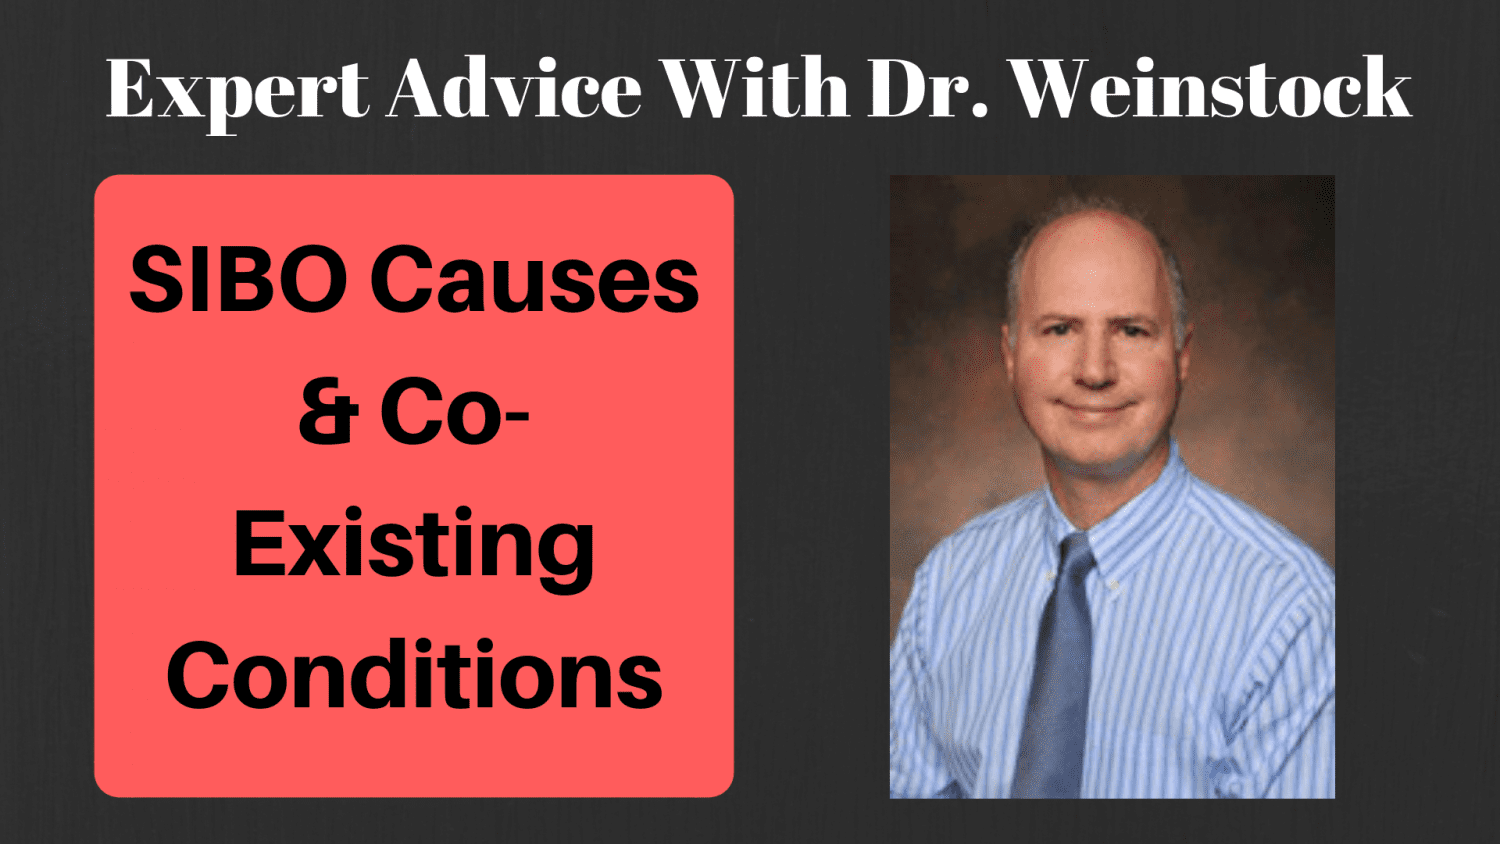 SIBO Causes & Co-existing Conditions (Interview with Dr. Weinstock)